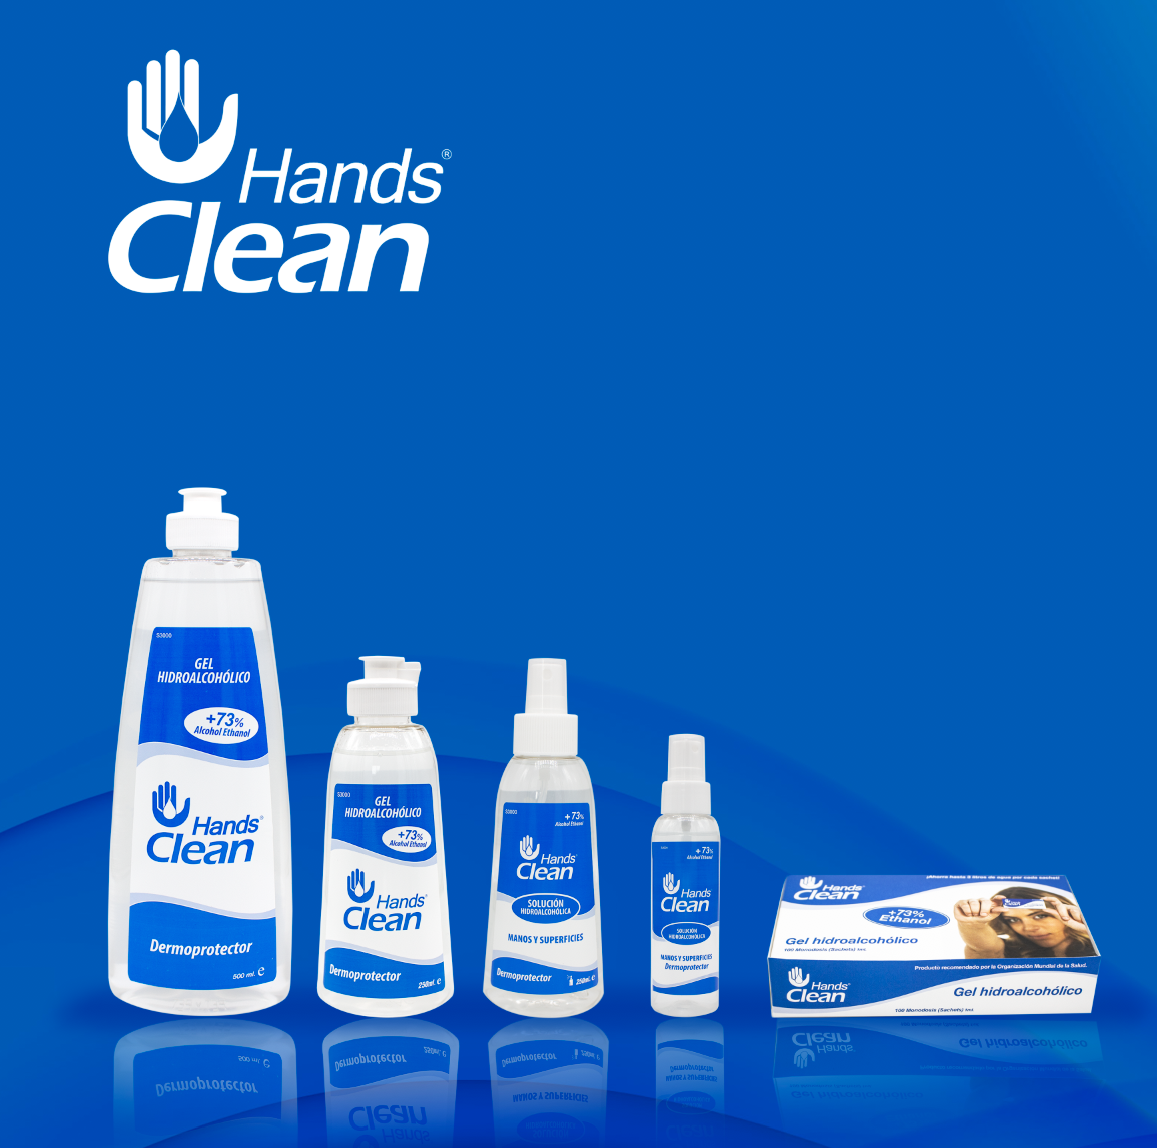 Hands Cleans